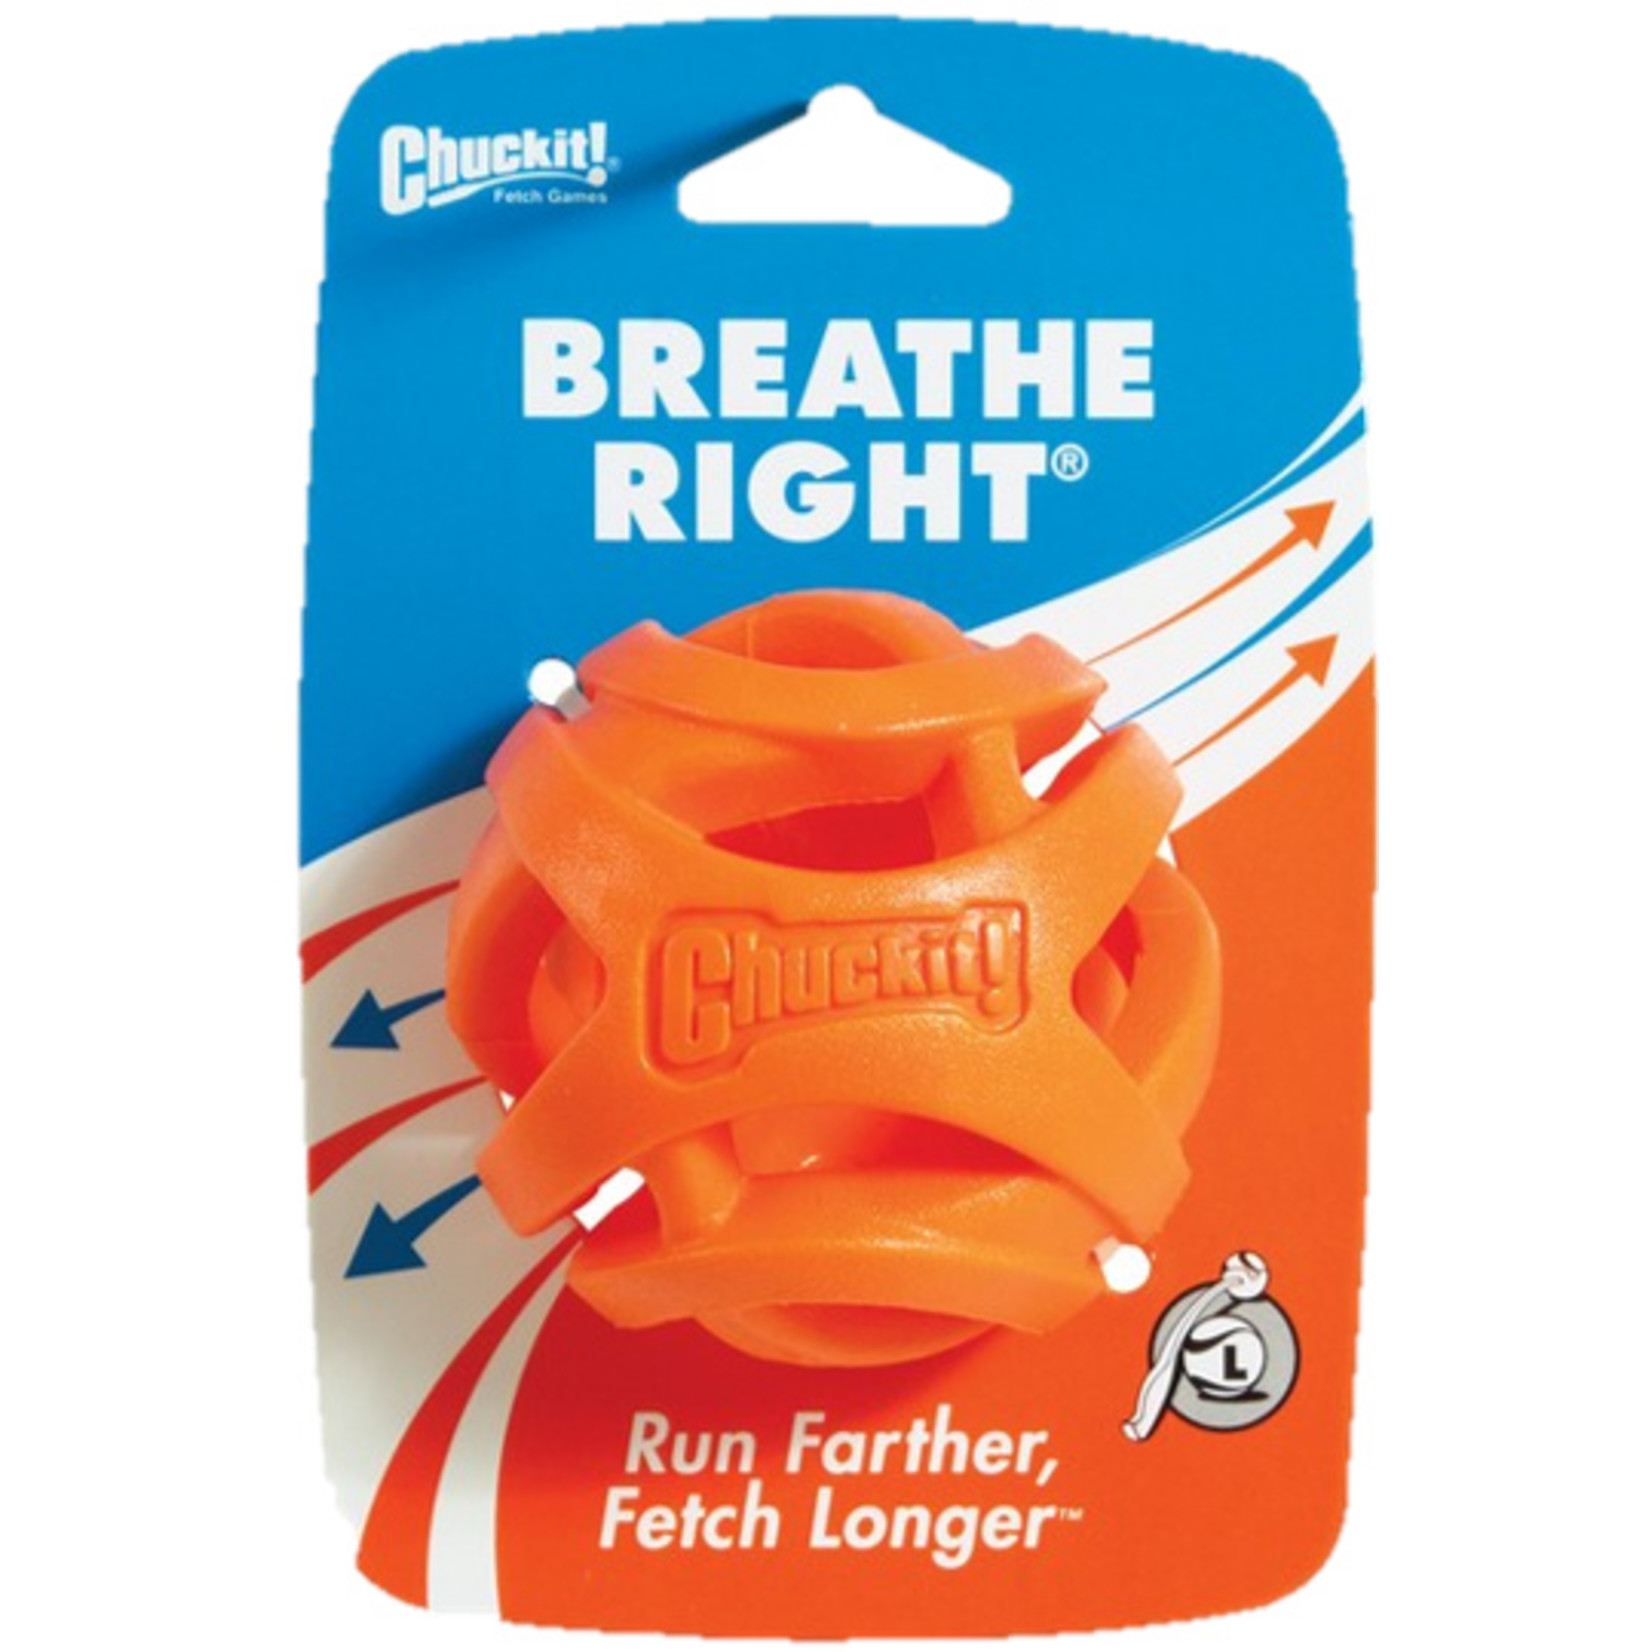 Chuckit! Breathe Right Fetch Ball Dog Toy, Large 6.5cm